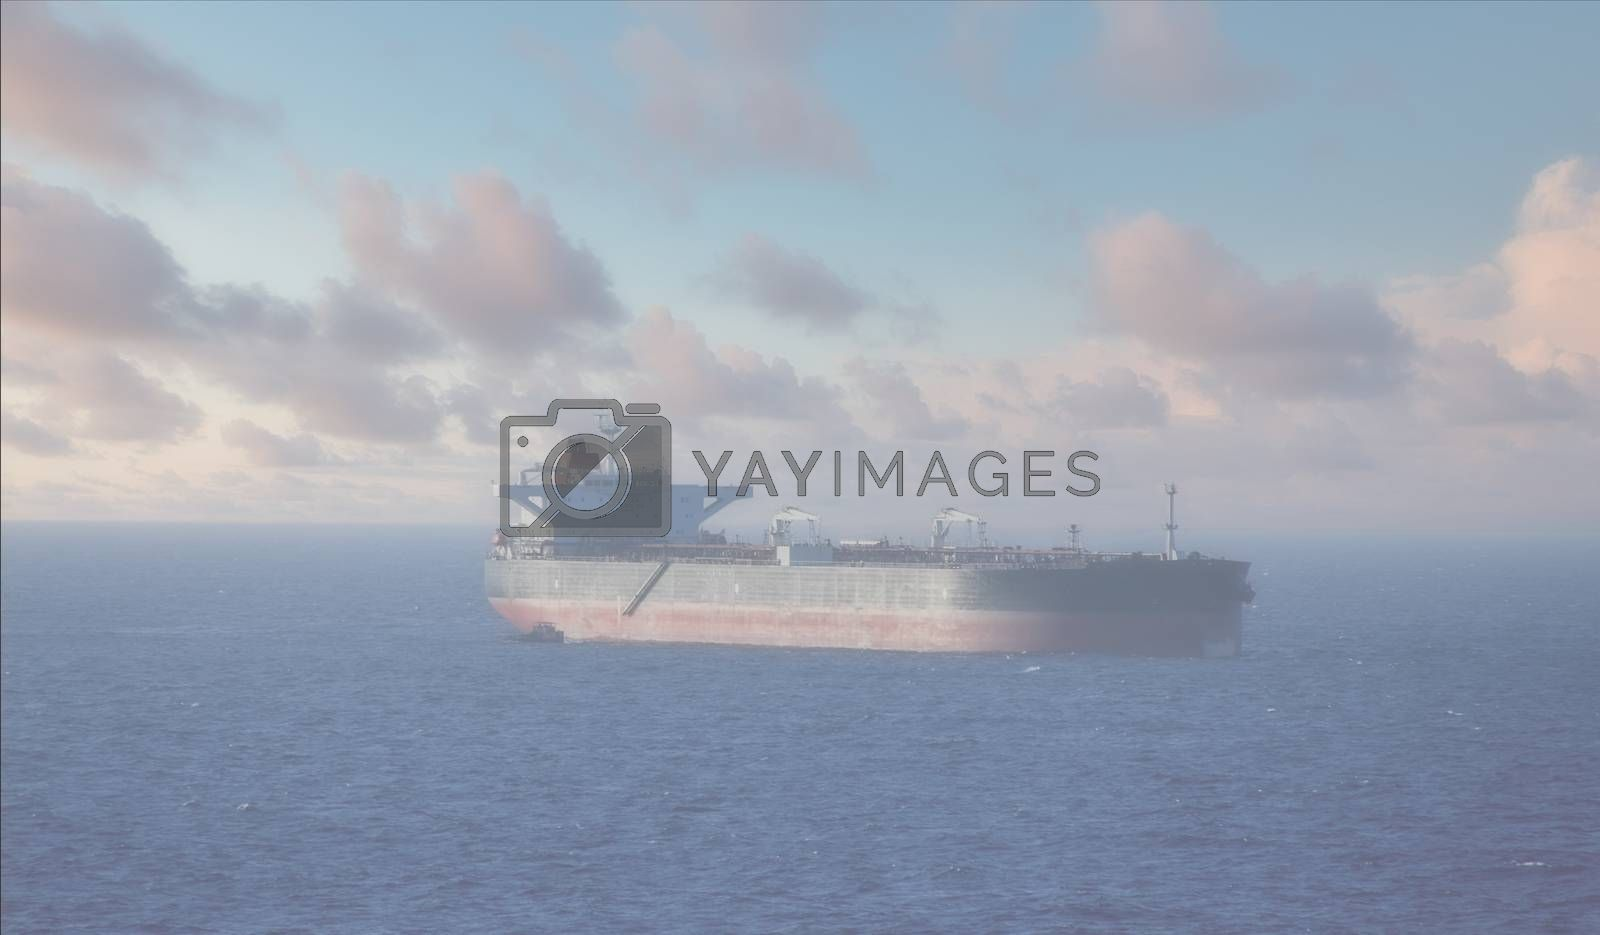 A Heavy Tanker waiting off shore in the mist